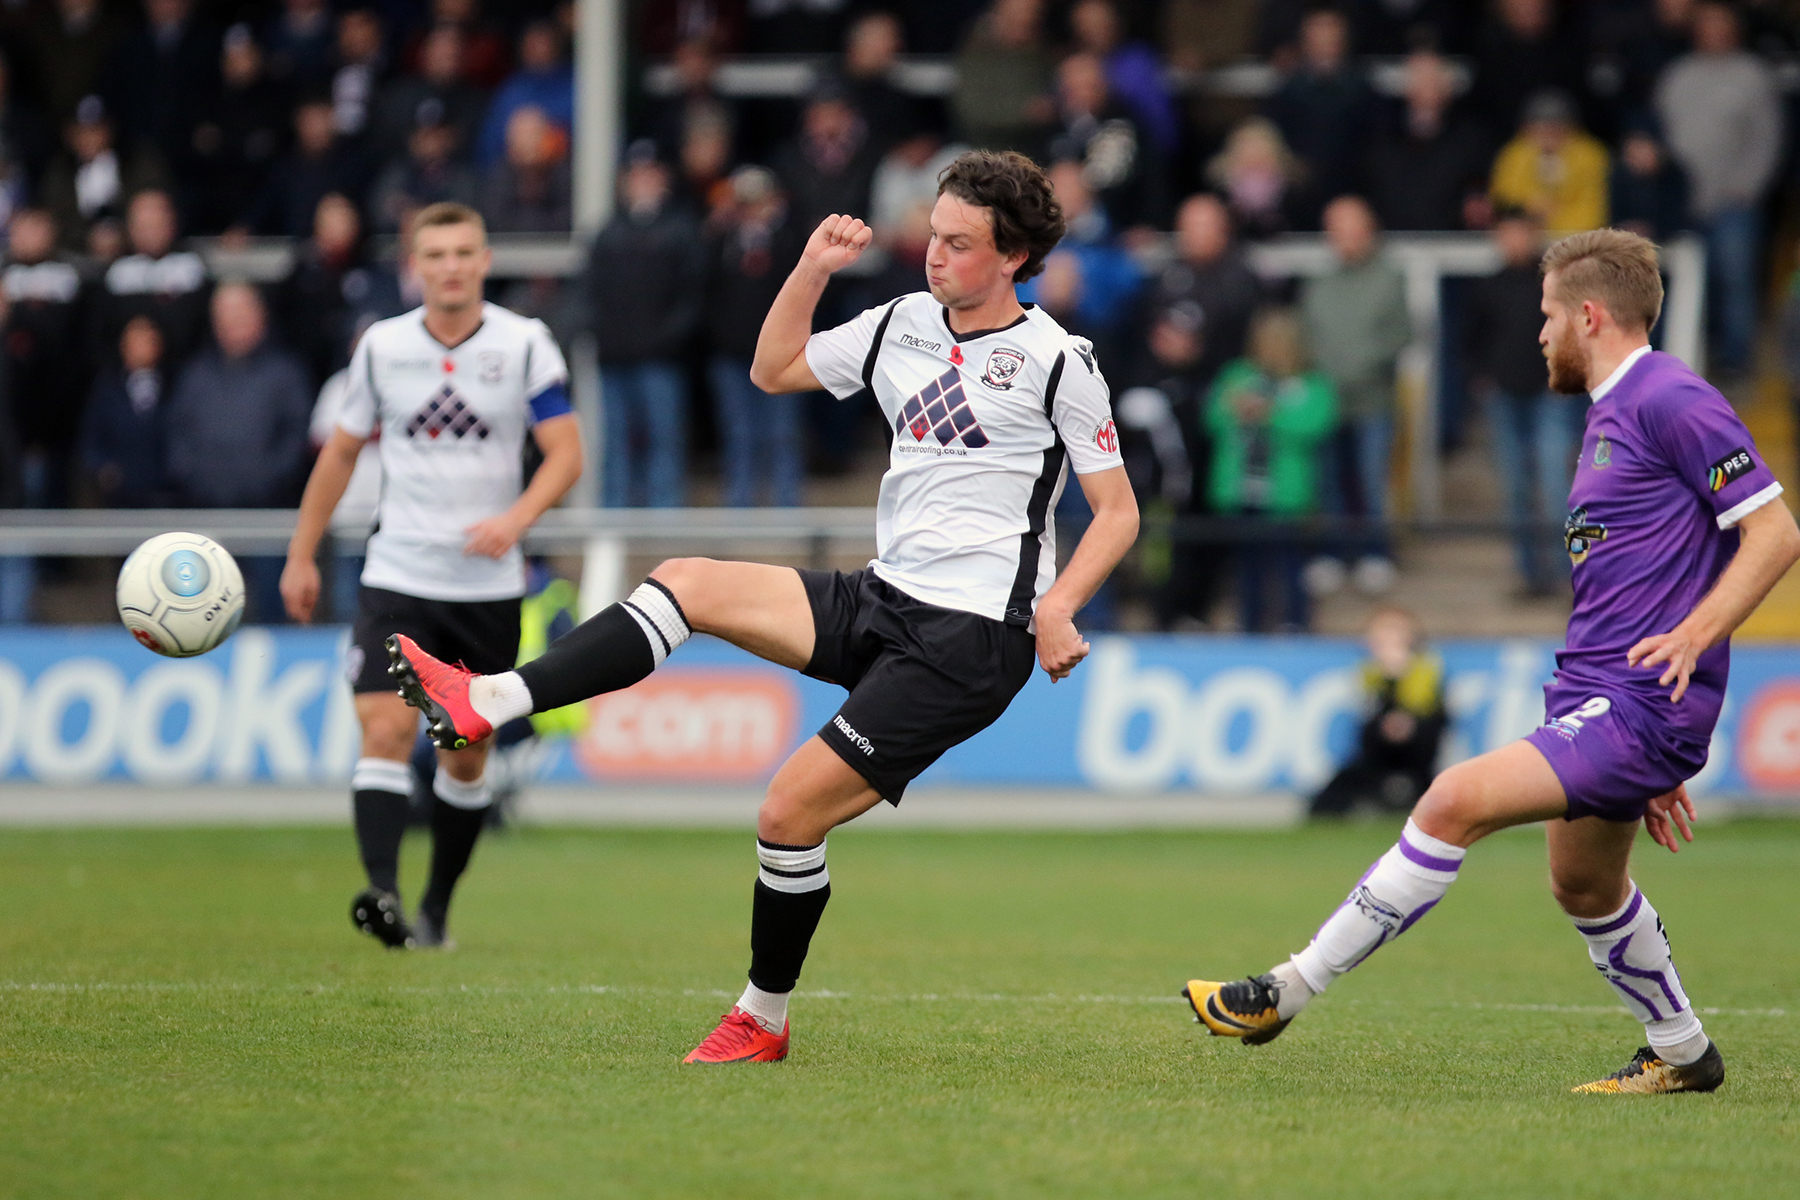 Tom Owen-Evans. Picture: Steve Niblett/Hereford FC